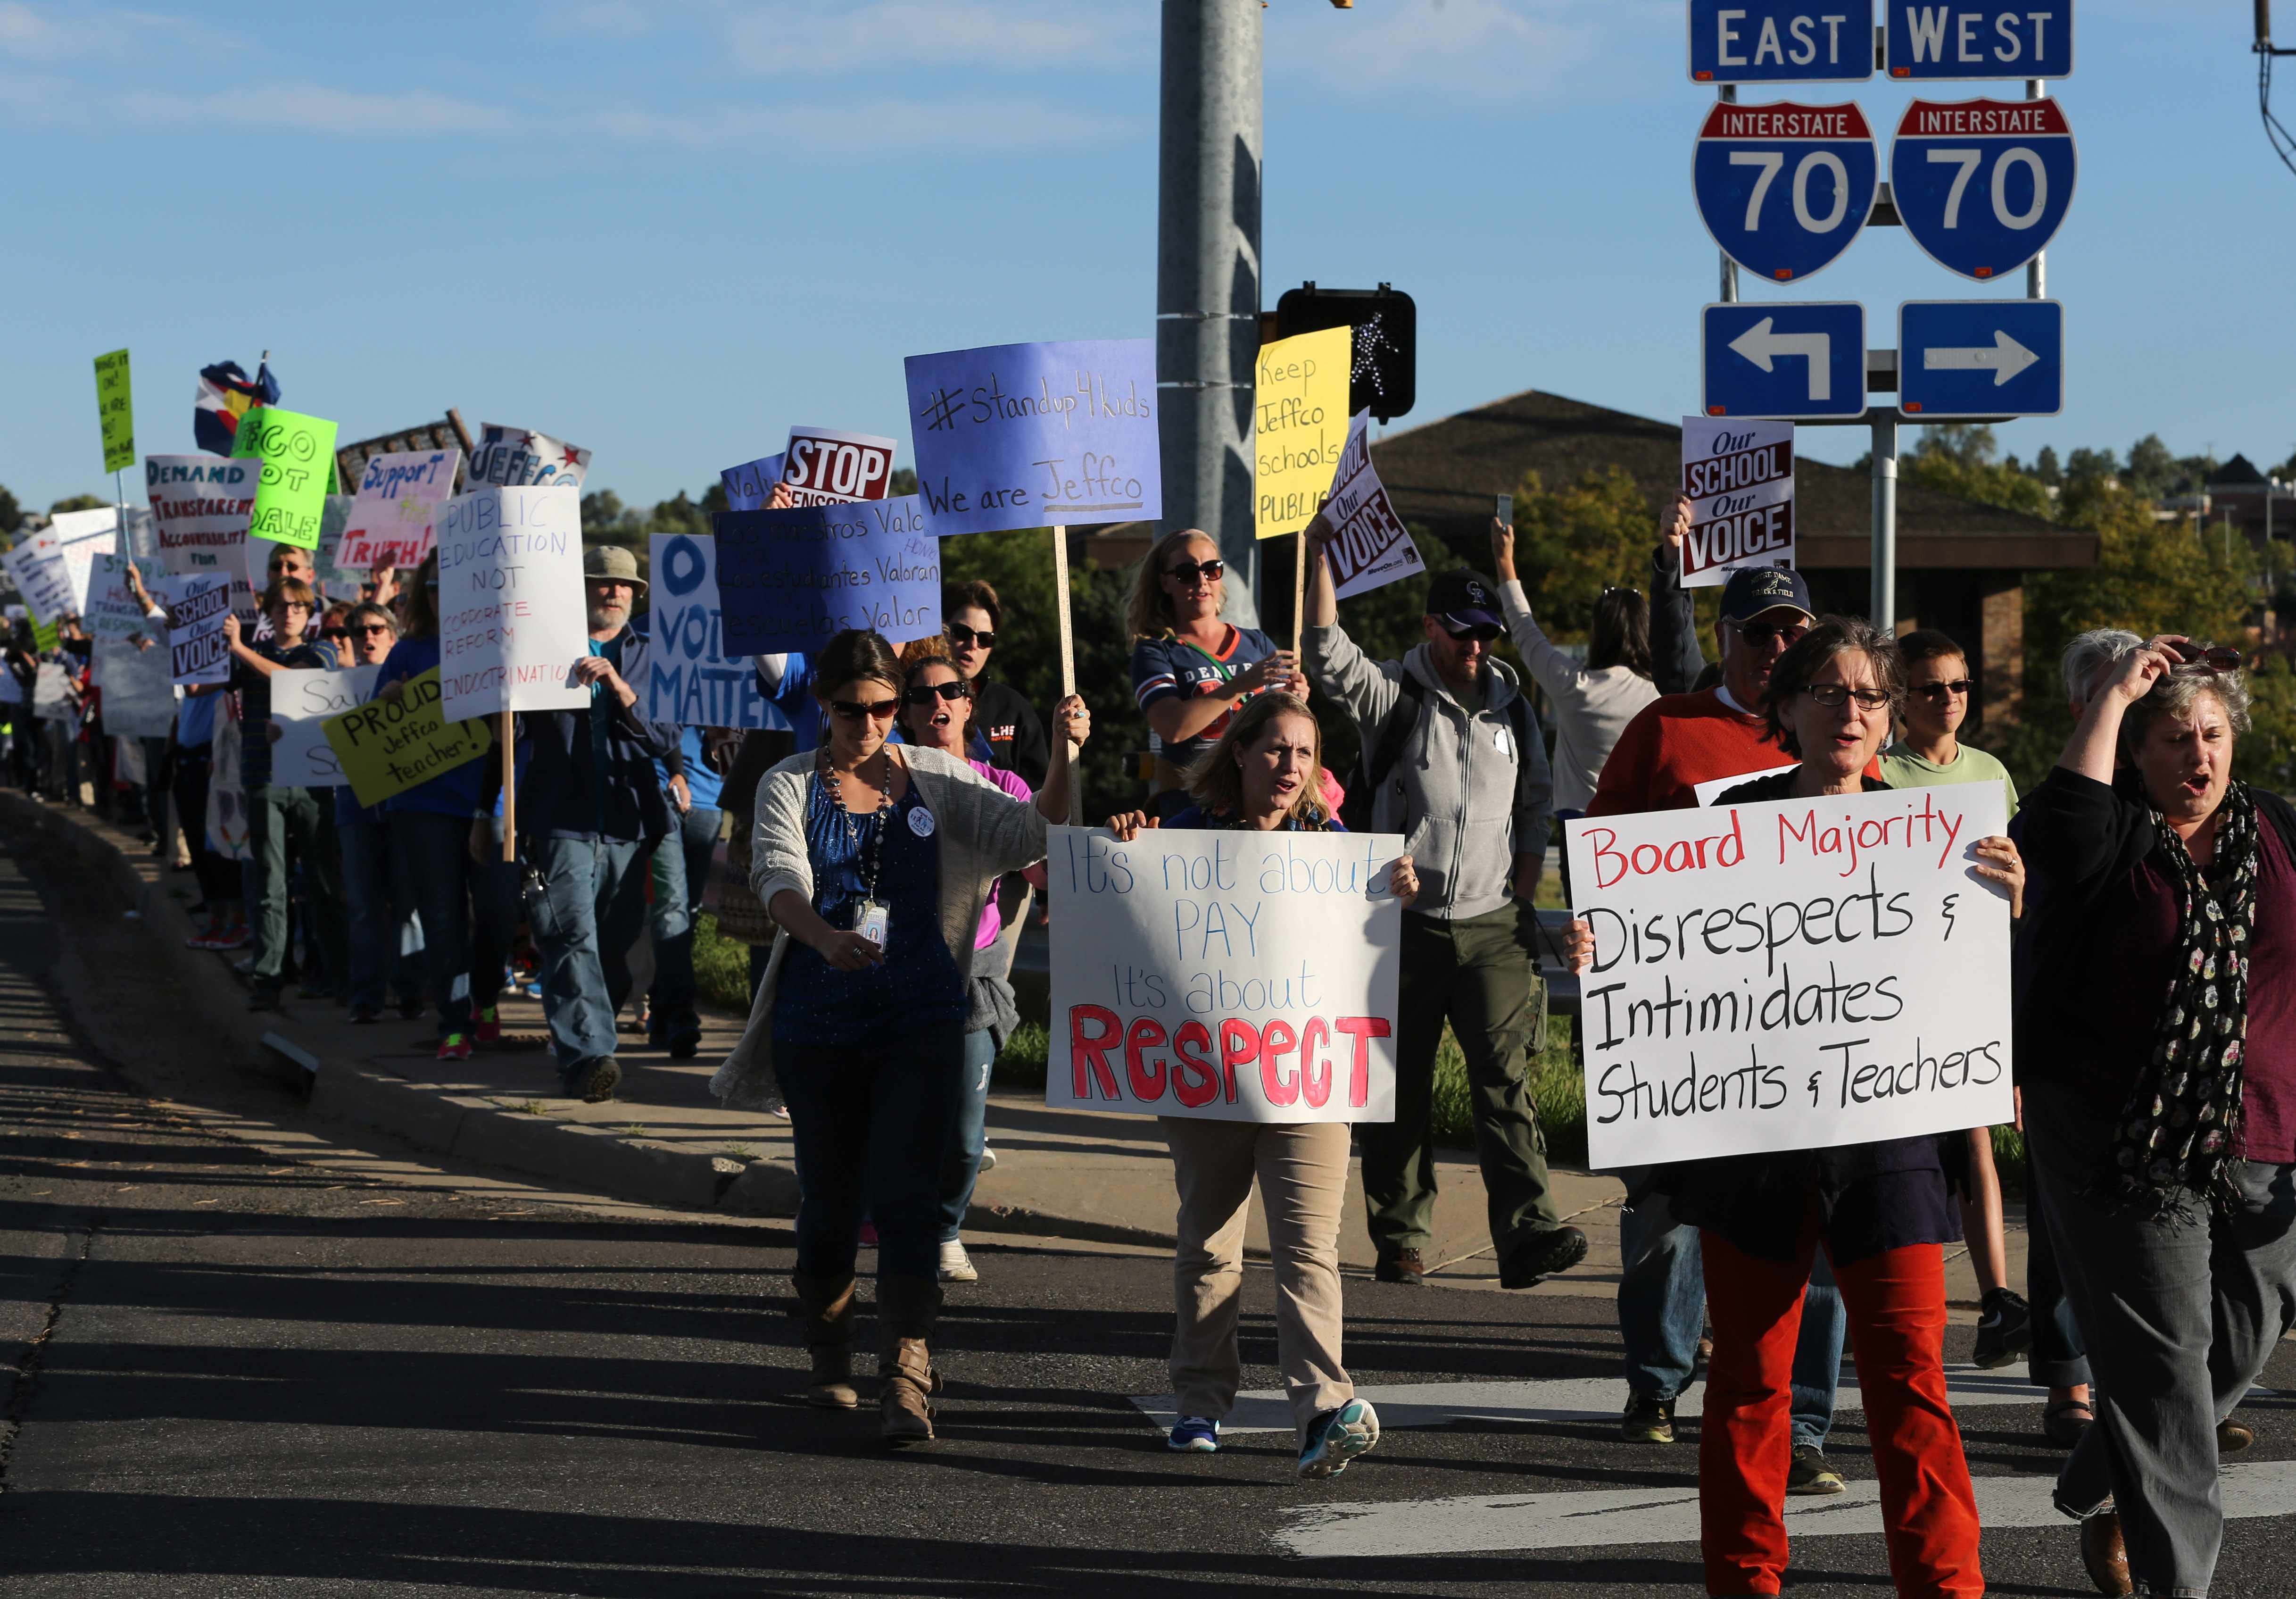 Teachers, students and supporters march near the location of an ongoing Jefferson County School Board meeting, in Golden, Colo., Thursday, Oct. 2, 2014.